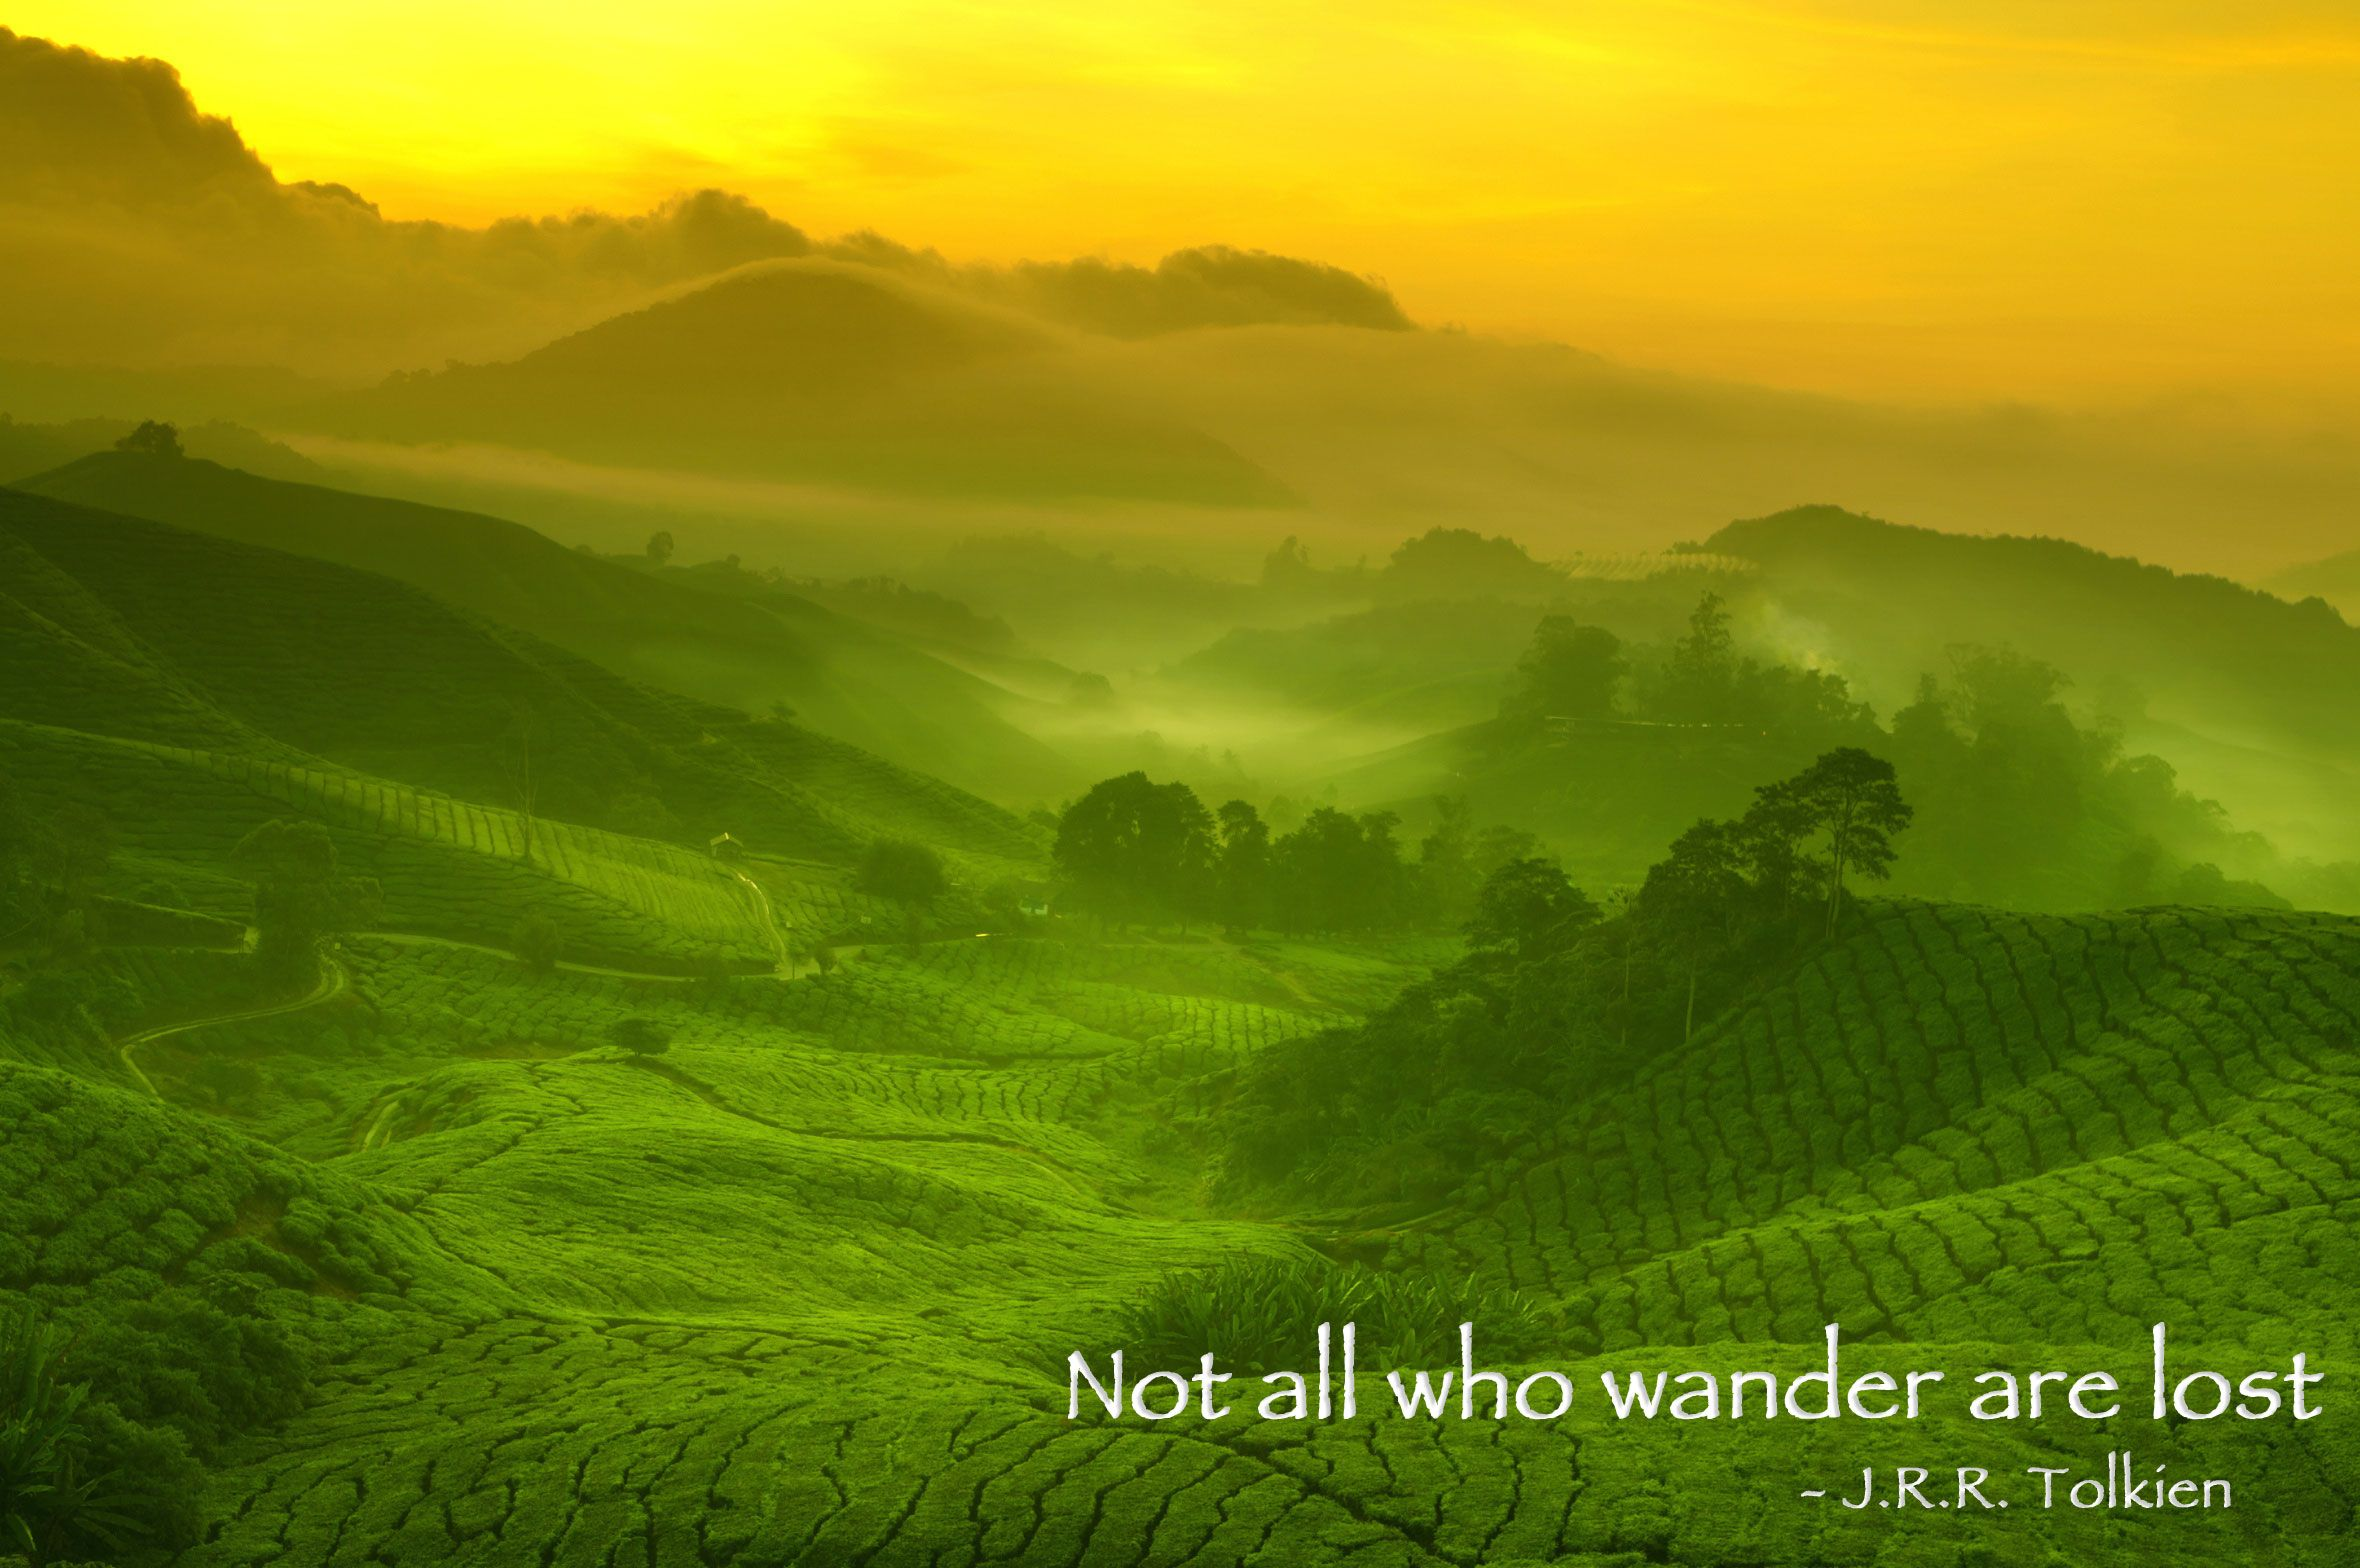 Not all who wander are lost. J.R.R. Tolkien The Soul's